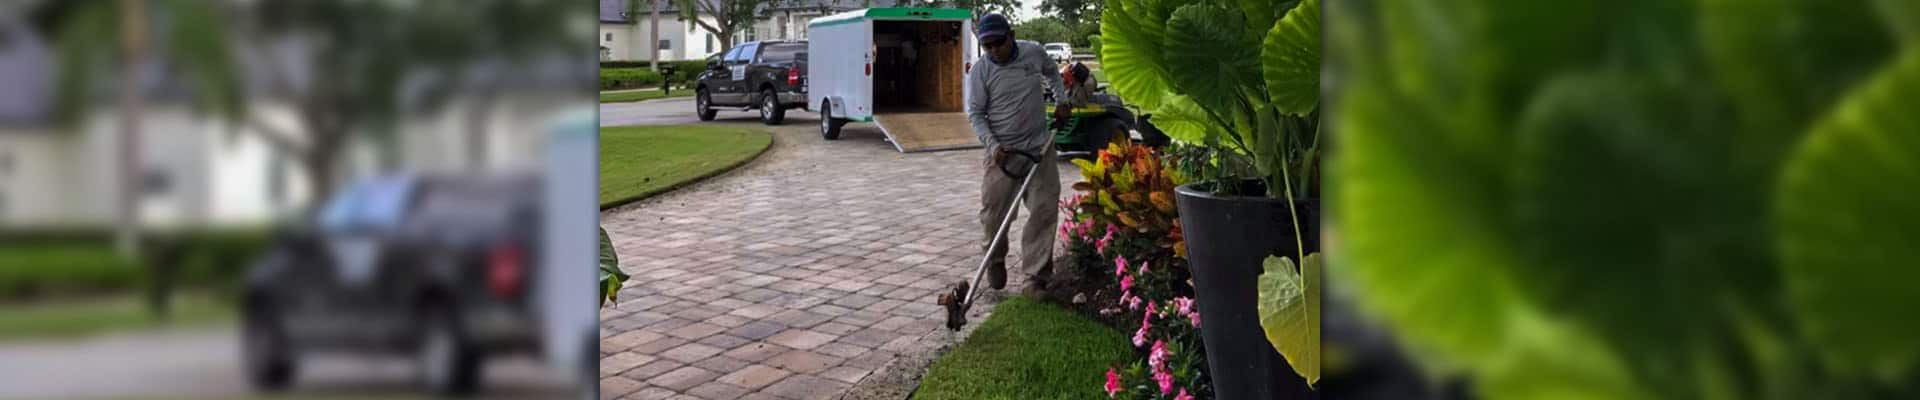 Employee of Leo Garden Care using a stick edger to complete lawn care service.